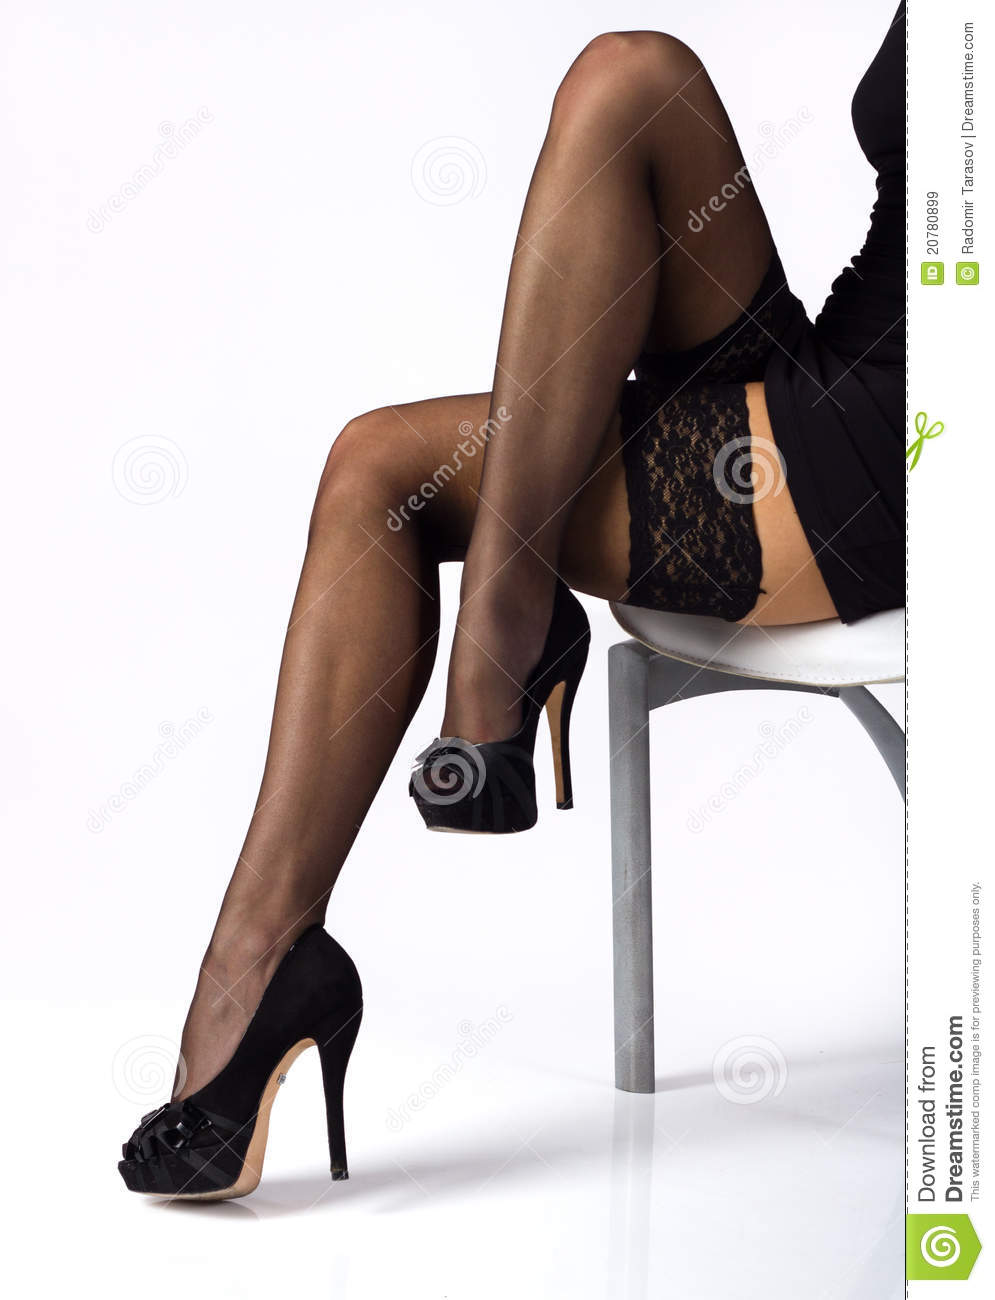 Site theme Sexy legs black stockings